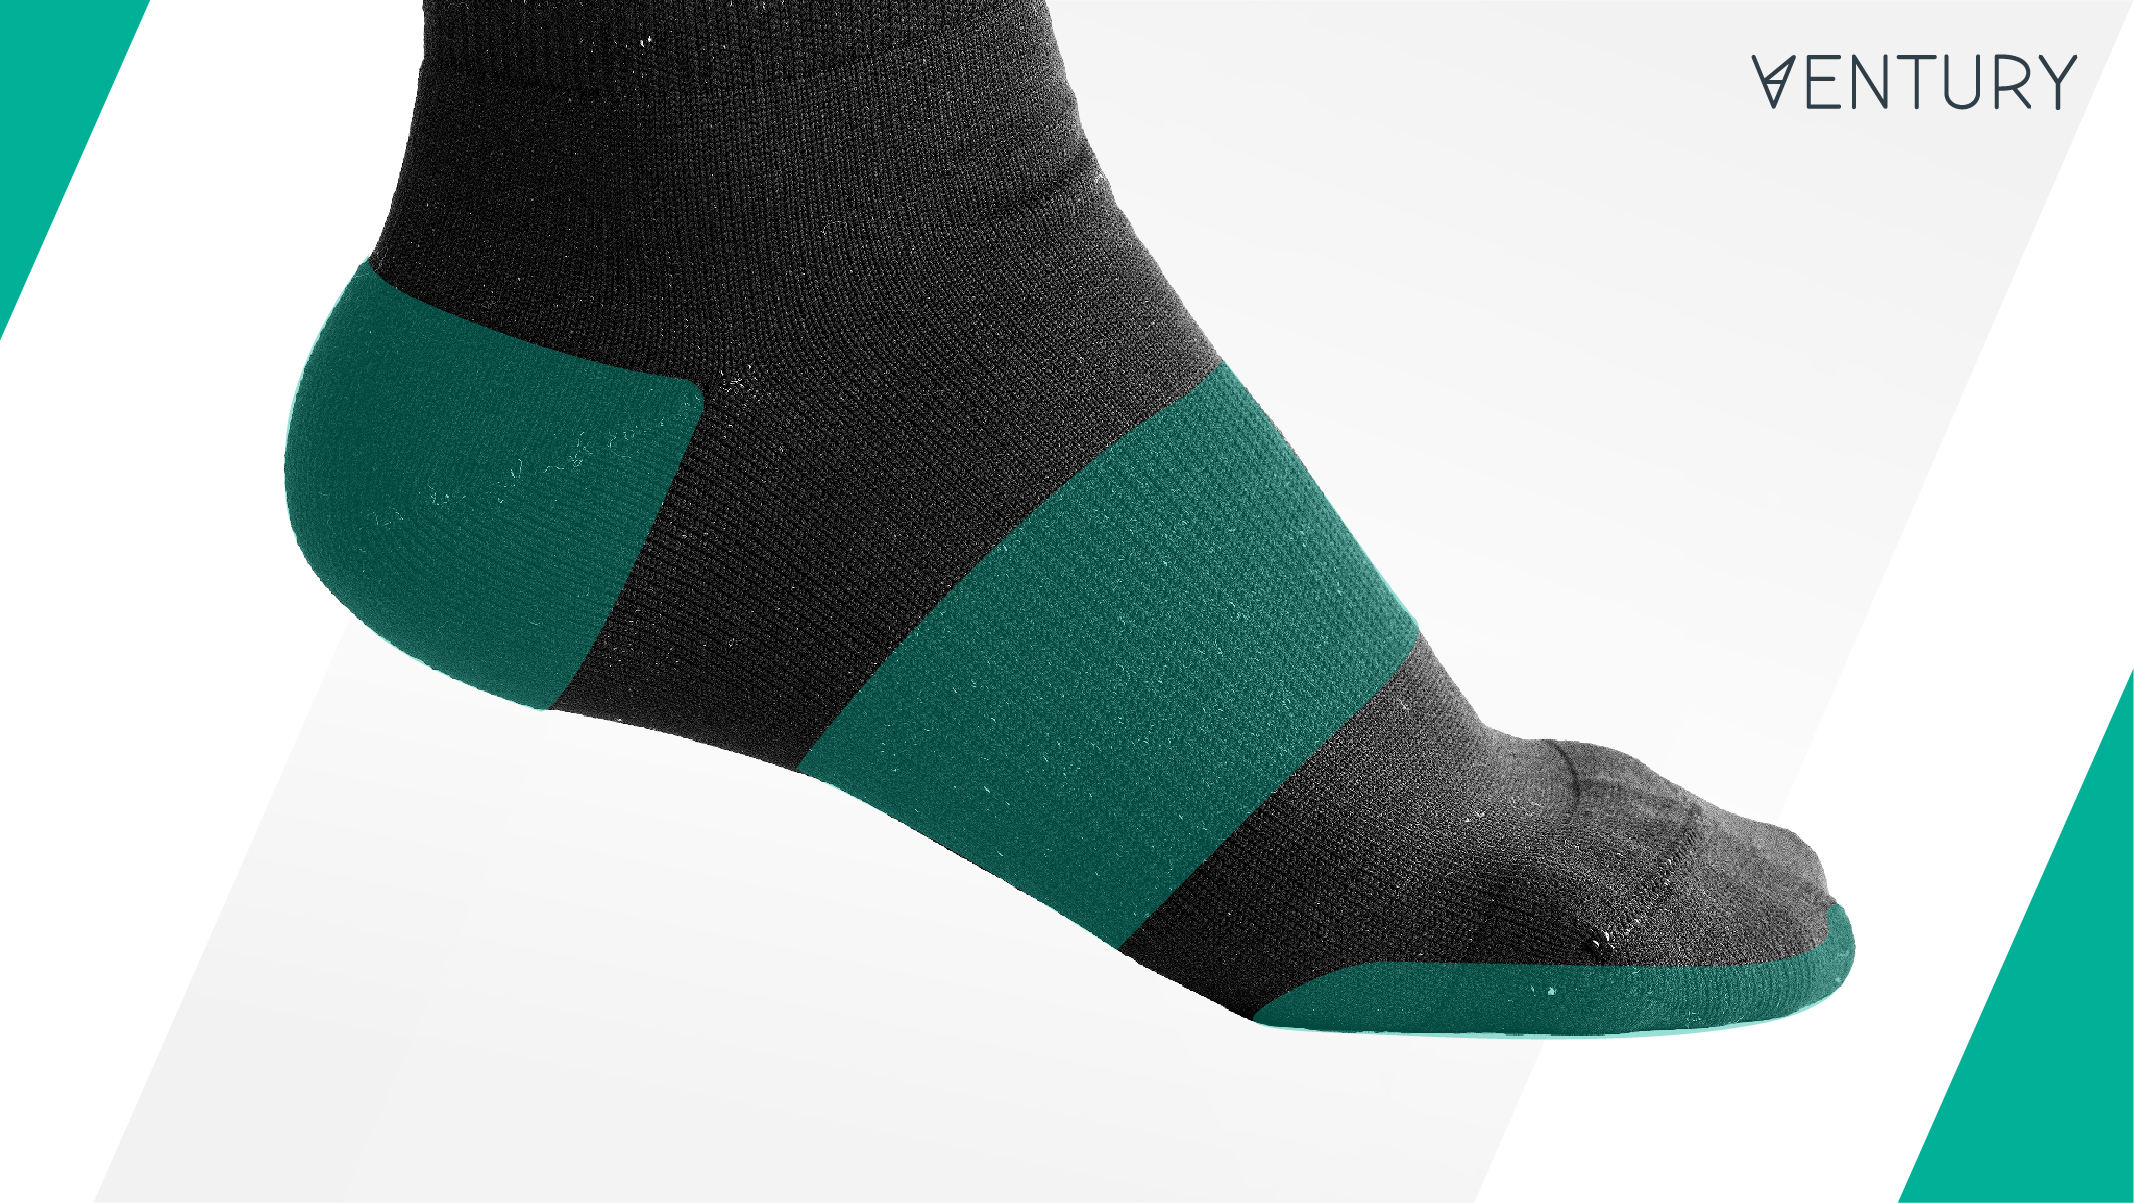 Support areas in Silverlight hiking socks